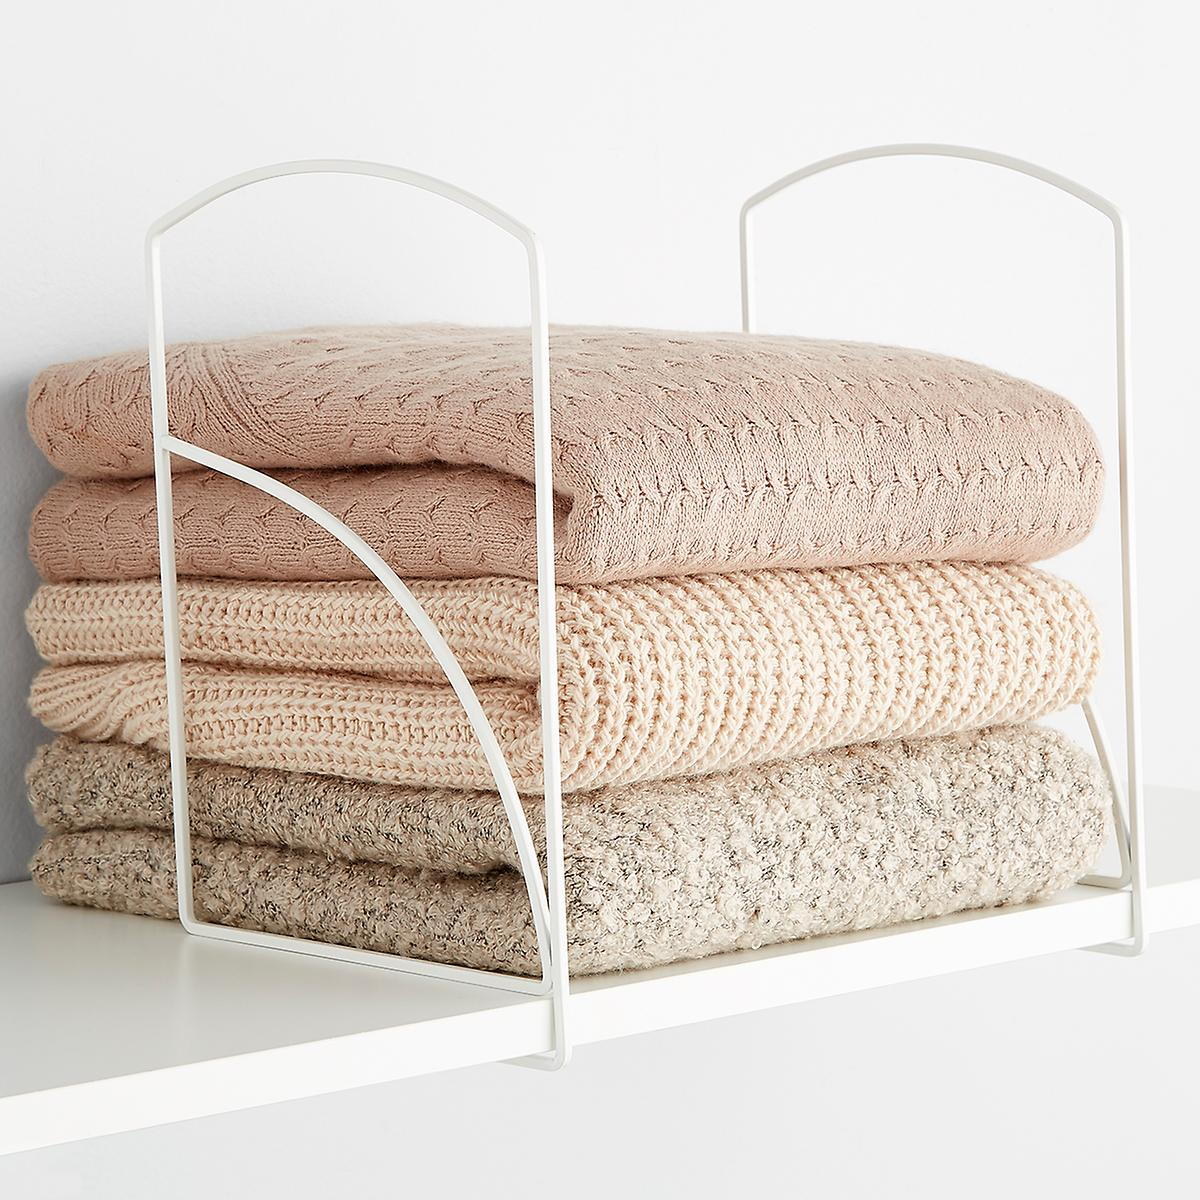 Lynk Tall White Shelf Dividers, $10/pkg at The Container Store - These useful dividers keep your purses, sweaters and T-shirts in line. (They also work wonders for linens, towels, books and cookie sheets.)